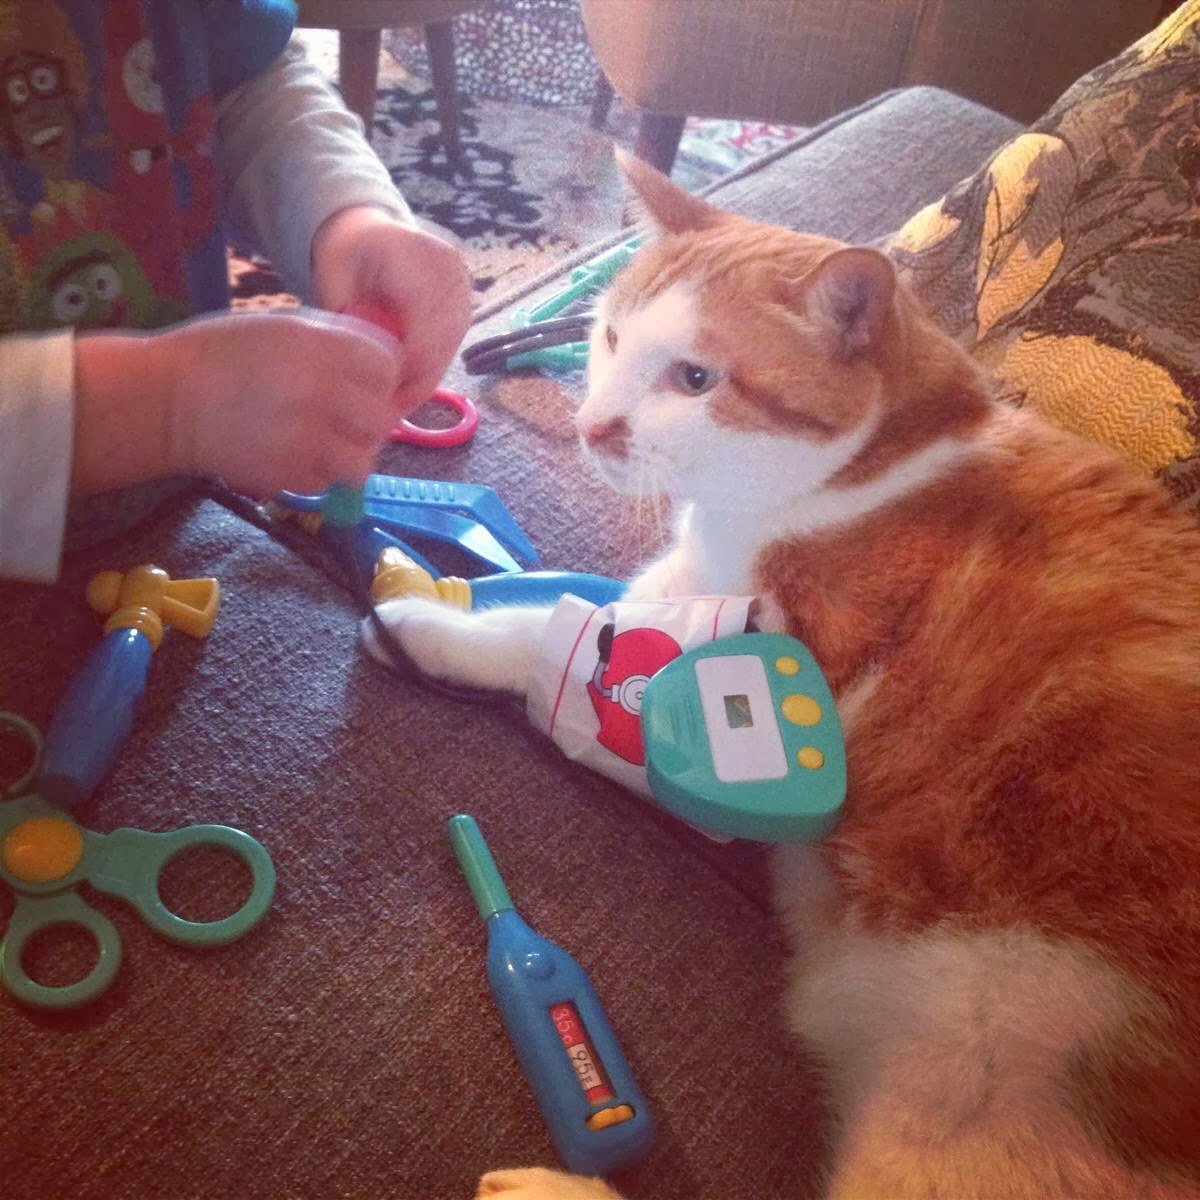 Funny cats - part 88 (40 pics + 10 gifs), cat plays doctor with human kid